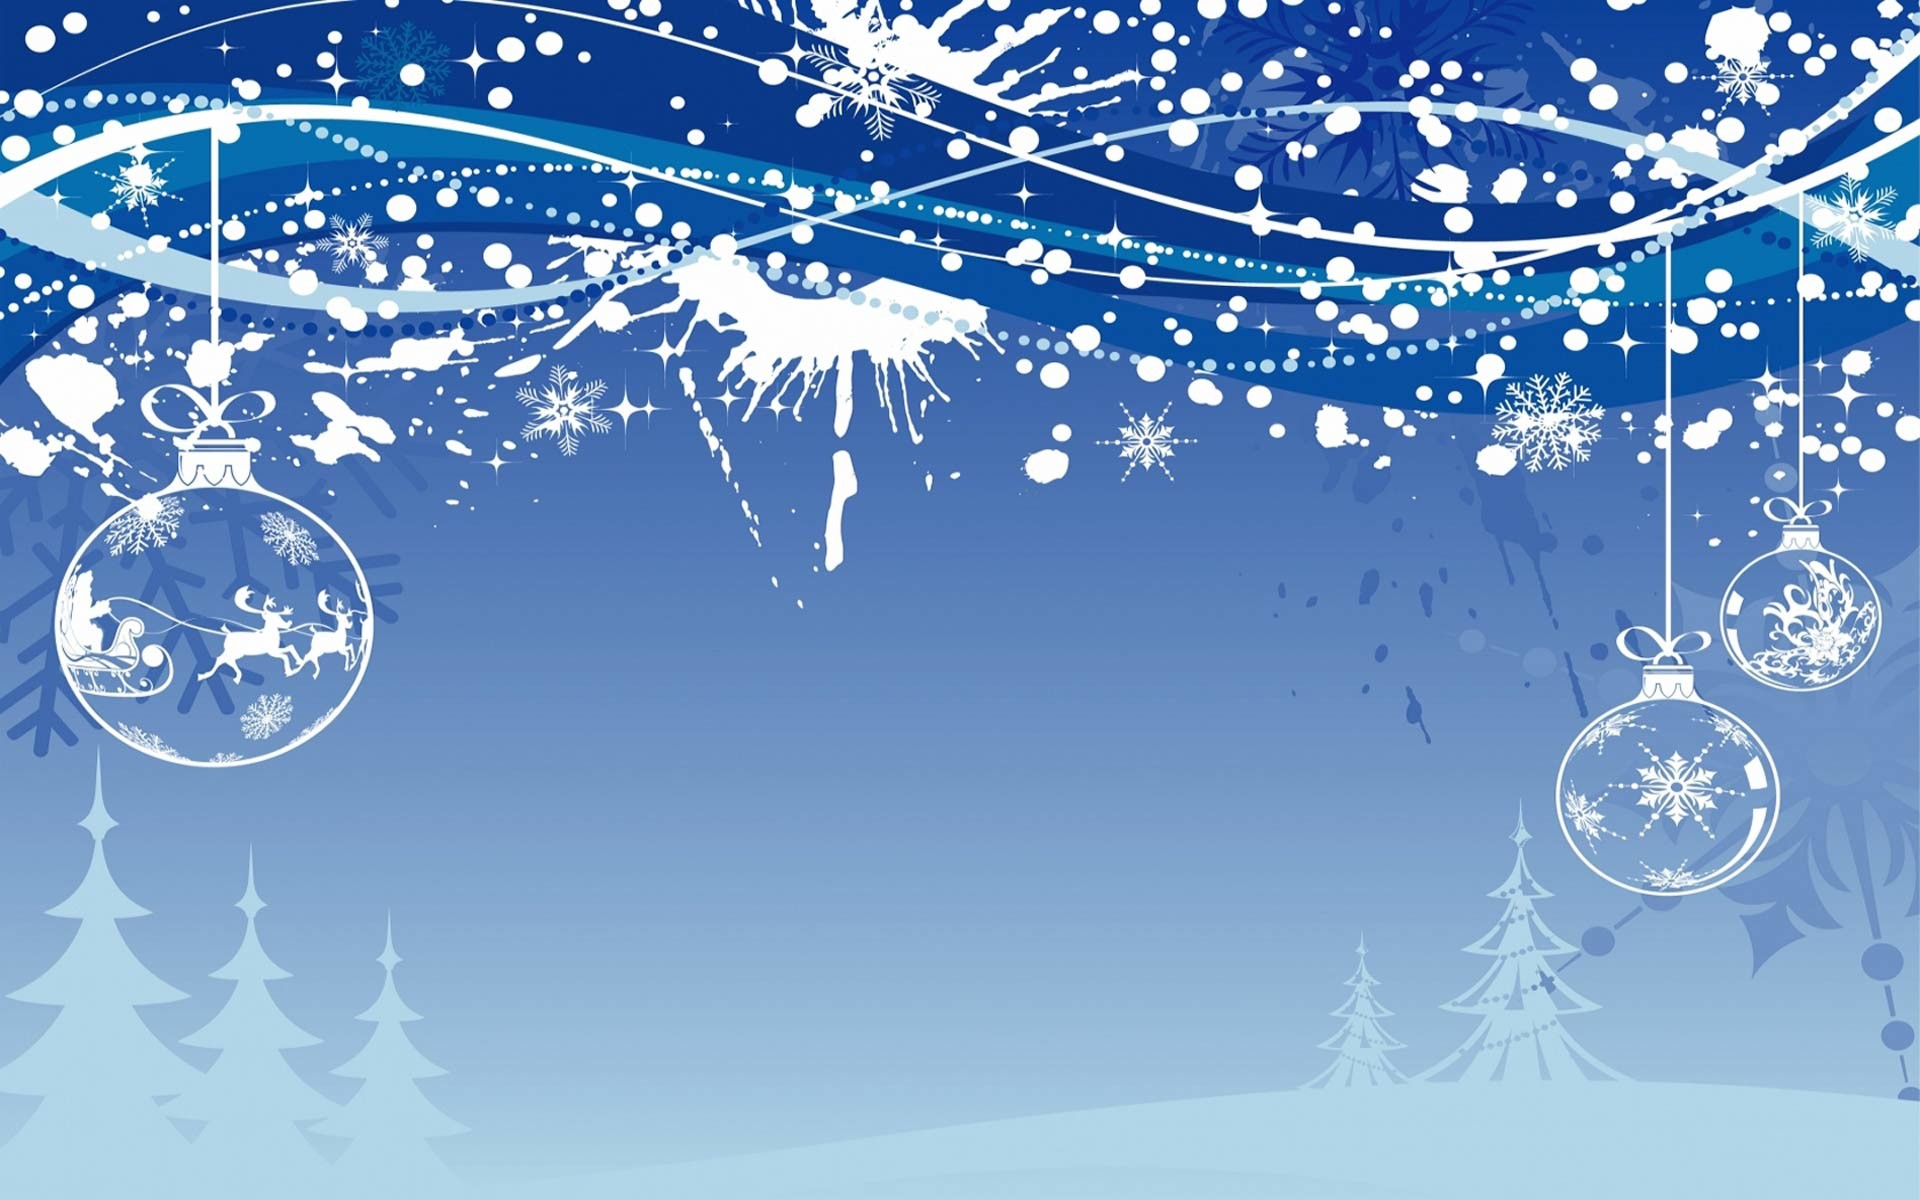 1920x1200 android | free live christmas wallpaper android | Desktop Backgrounds .